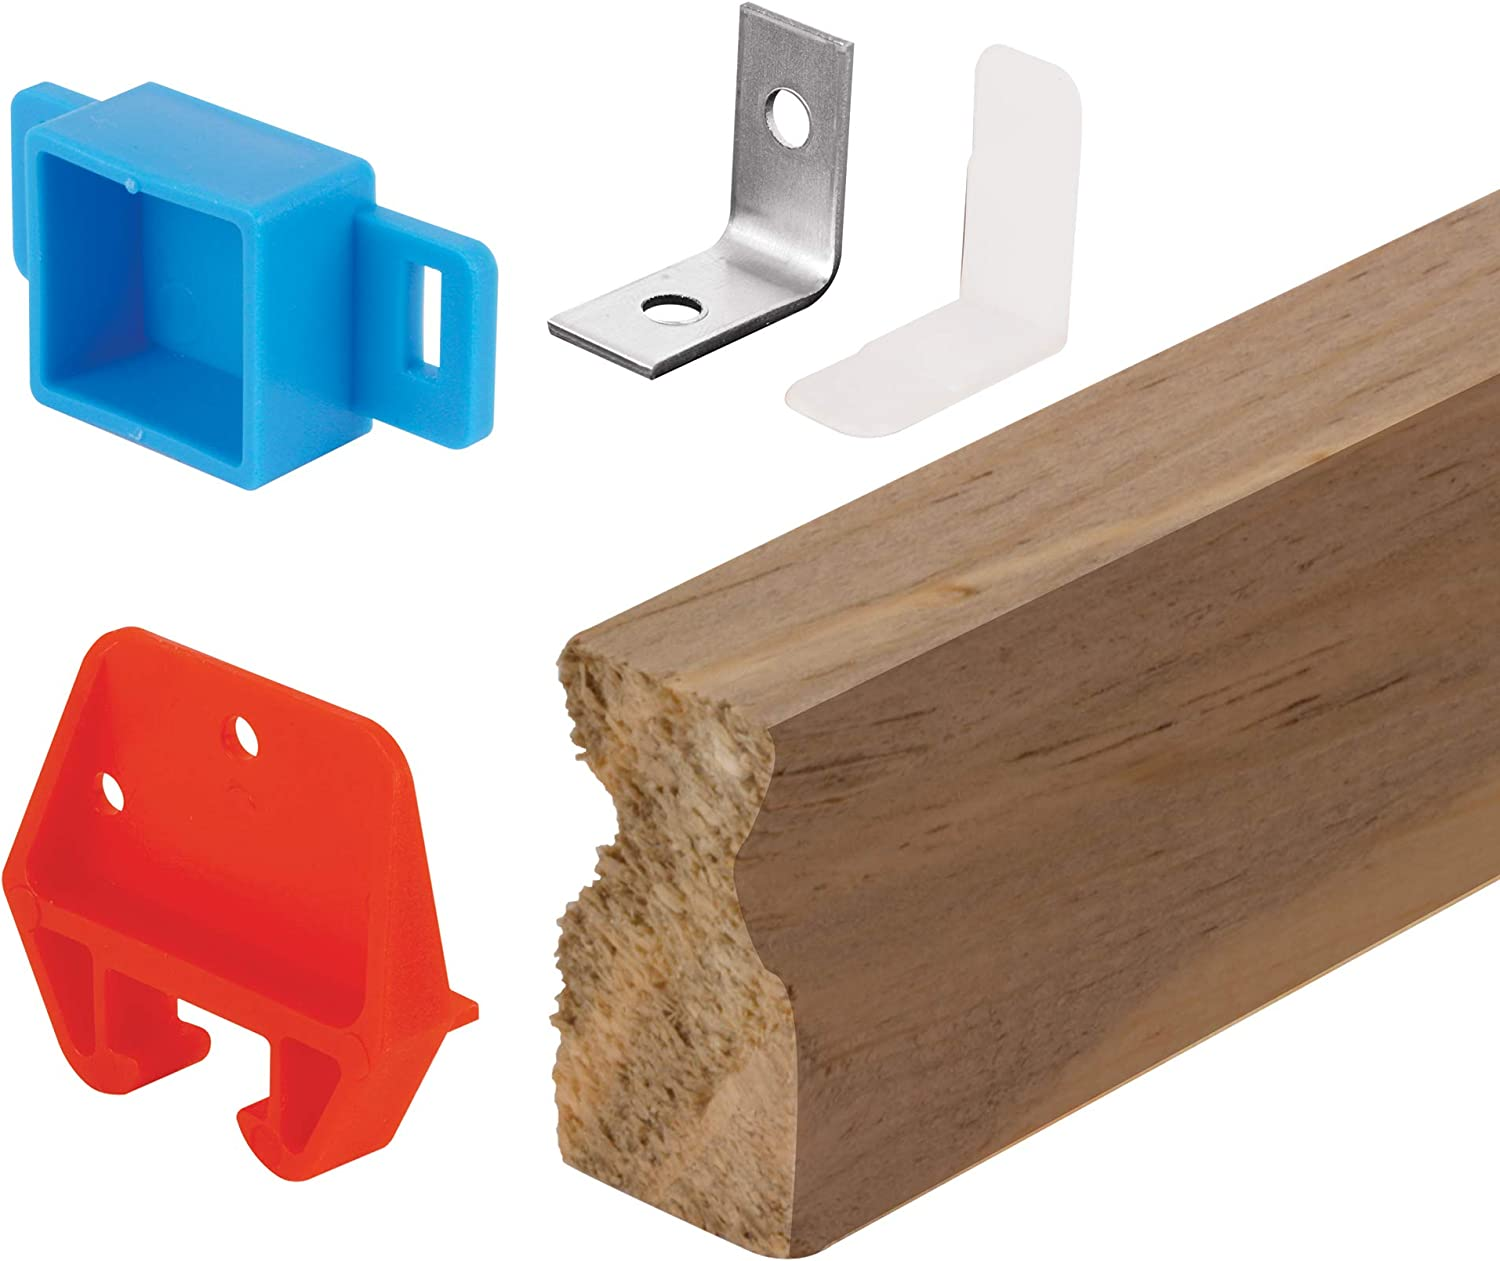 Prime-Line Max 72% OFF MP7144 Drawer Track Repair Kit 24 Wood S Plastic in Sale Special Price